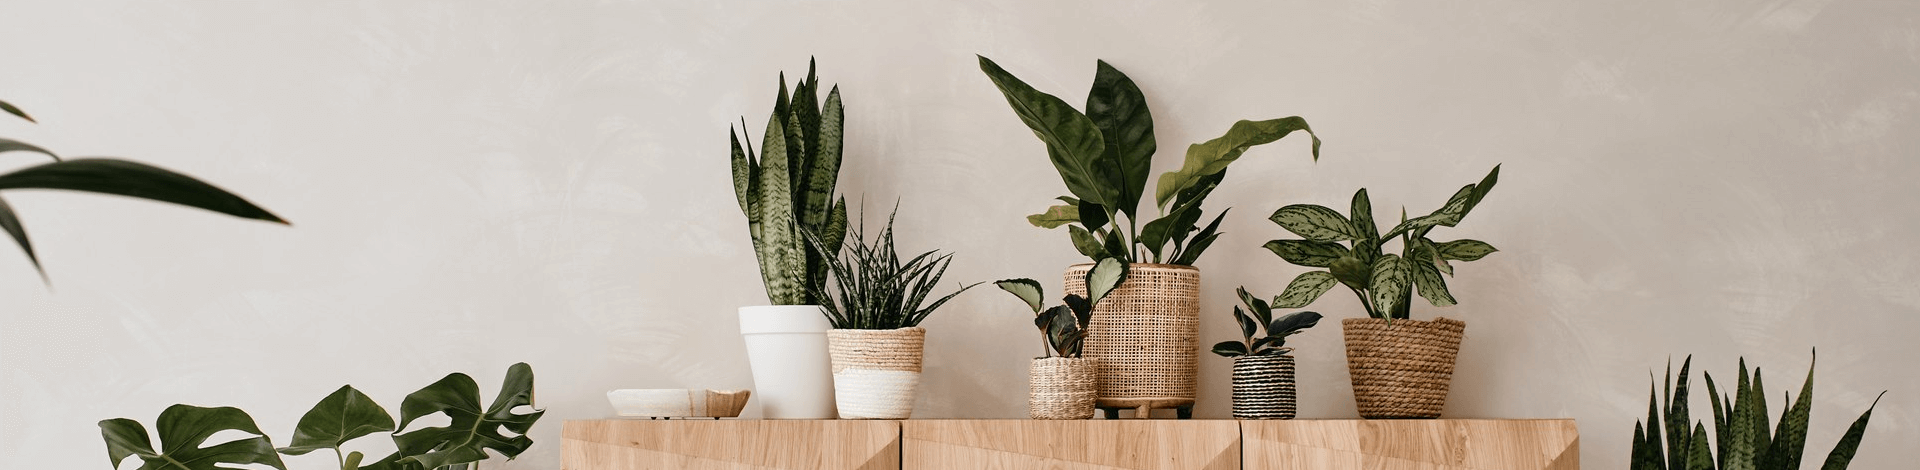 Find the most beautiful houseplants